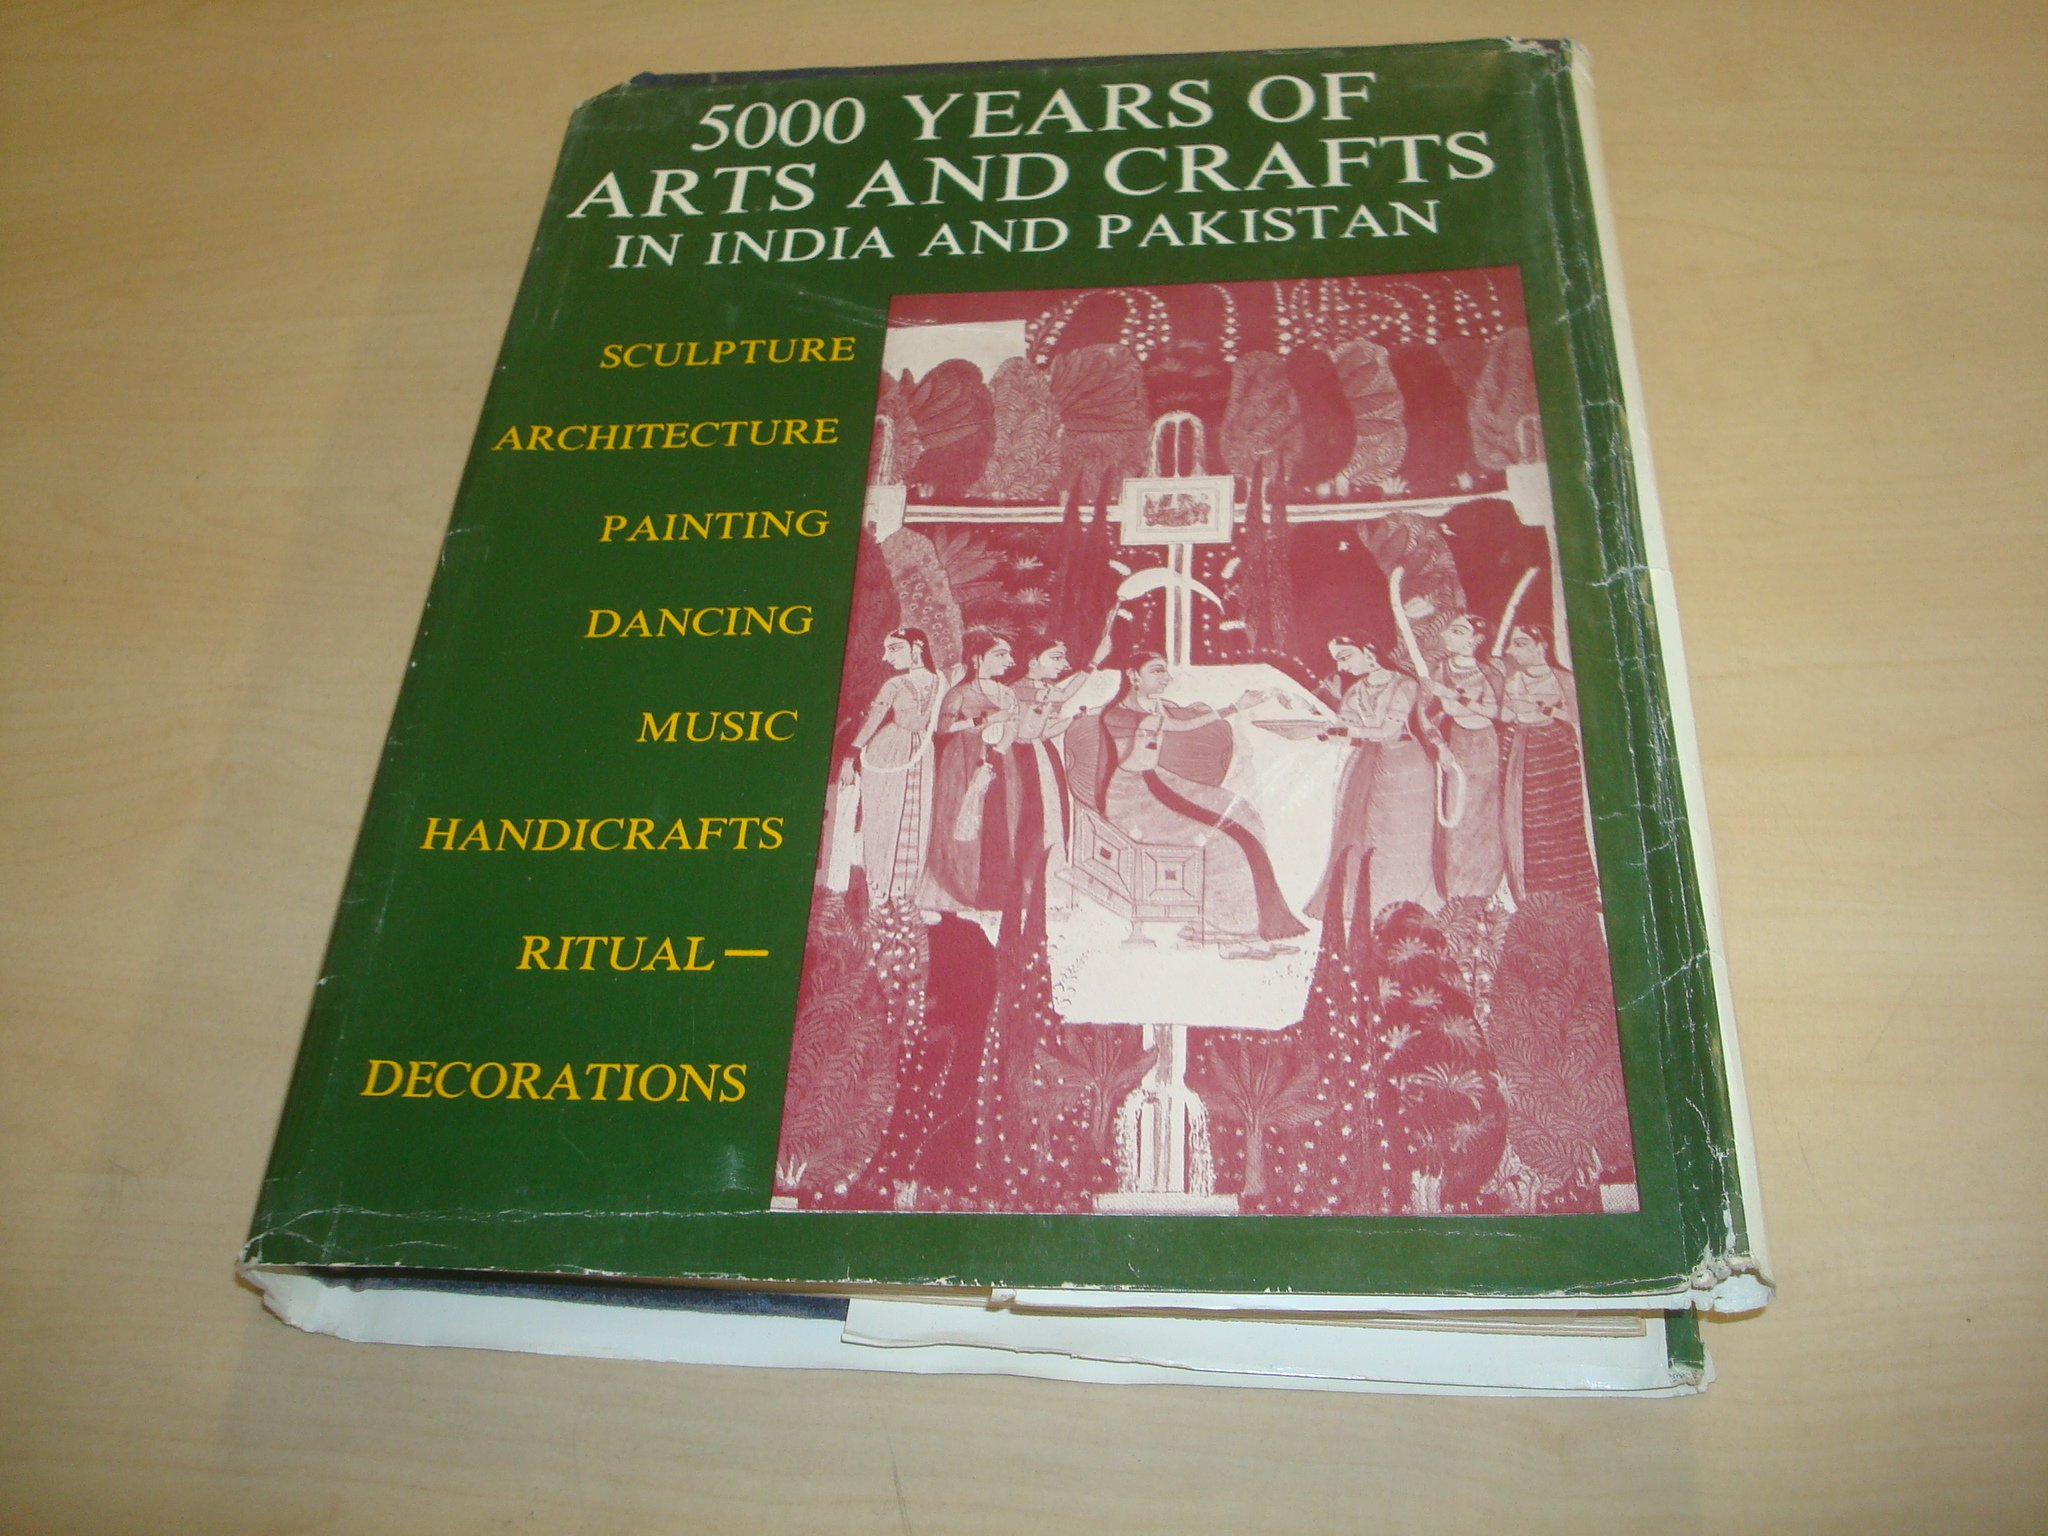 5000 Years Of Arts And Crafts In India And Pakistan A Survey Of Sculpture Architecture Painting Dance Music Handicrafts And Ritual Decorations From The Earliest Times To The Present Day Swarup Shanti